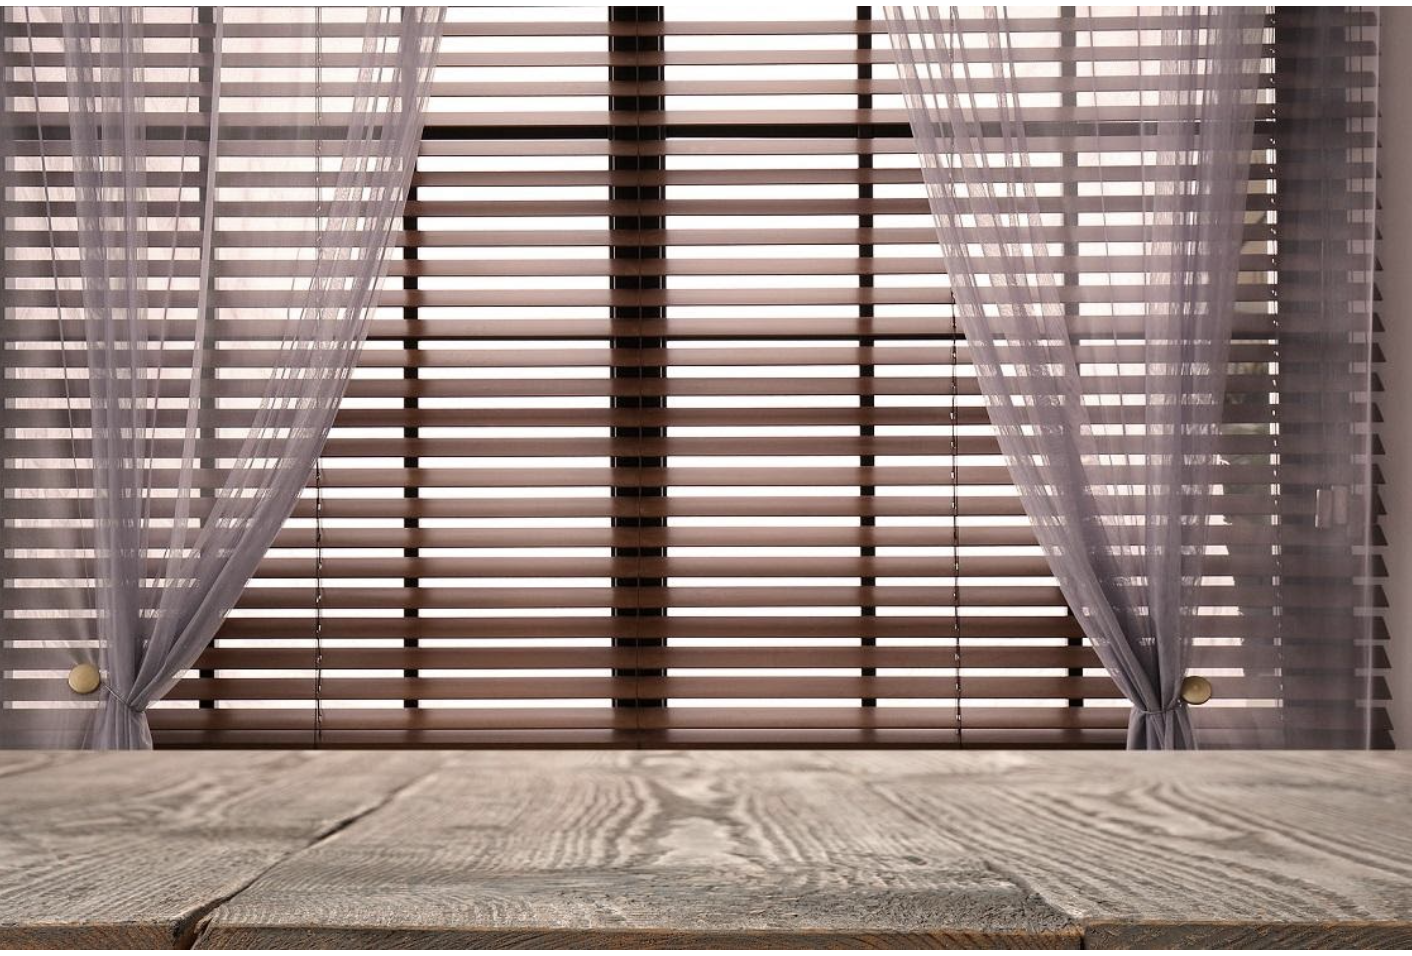 A wooden table in front of a window covered by wooden venetian blinds and sheer curtains.